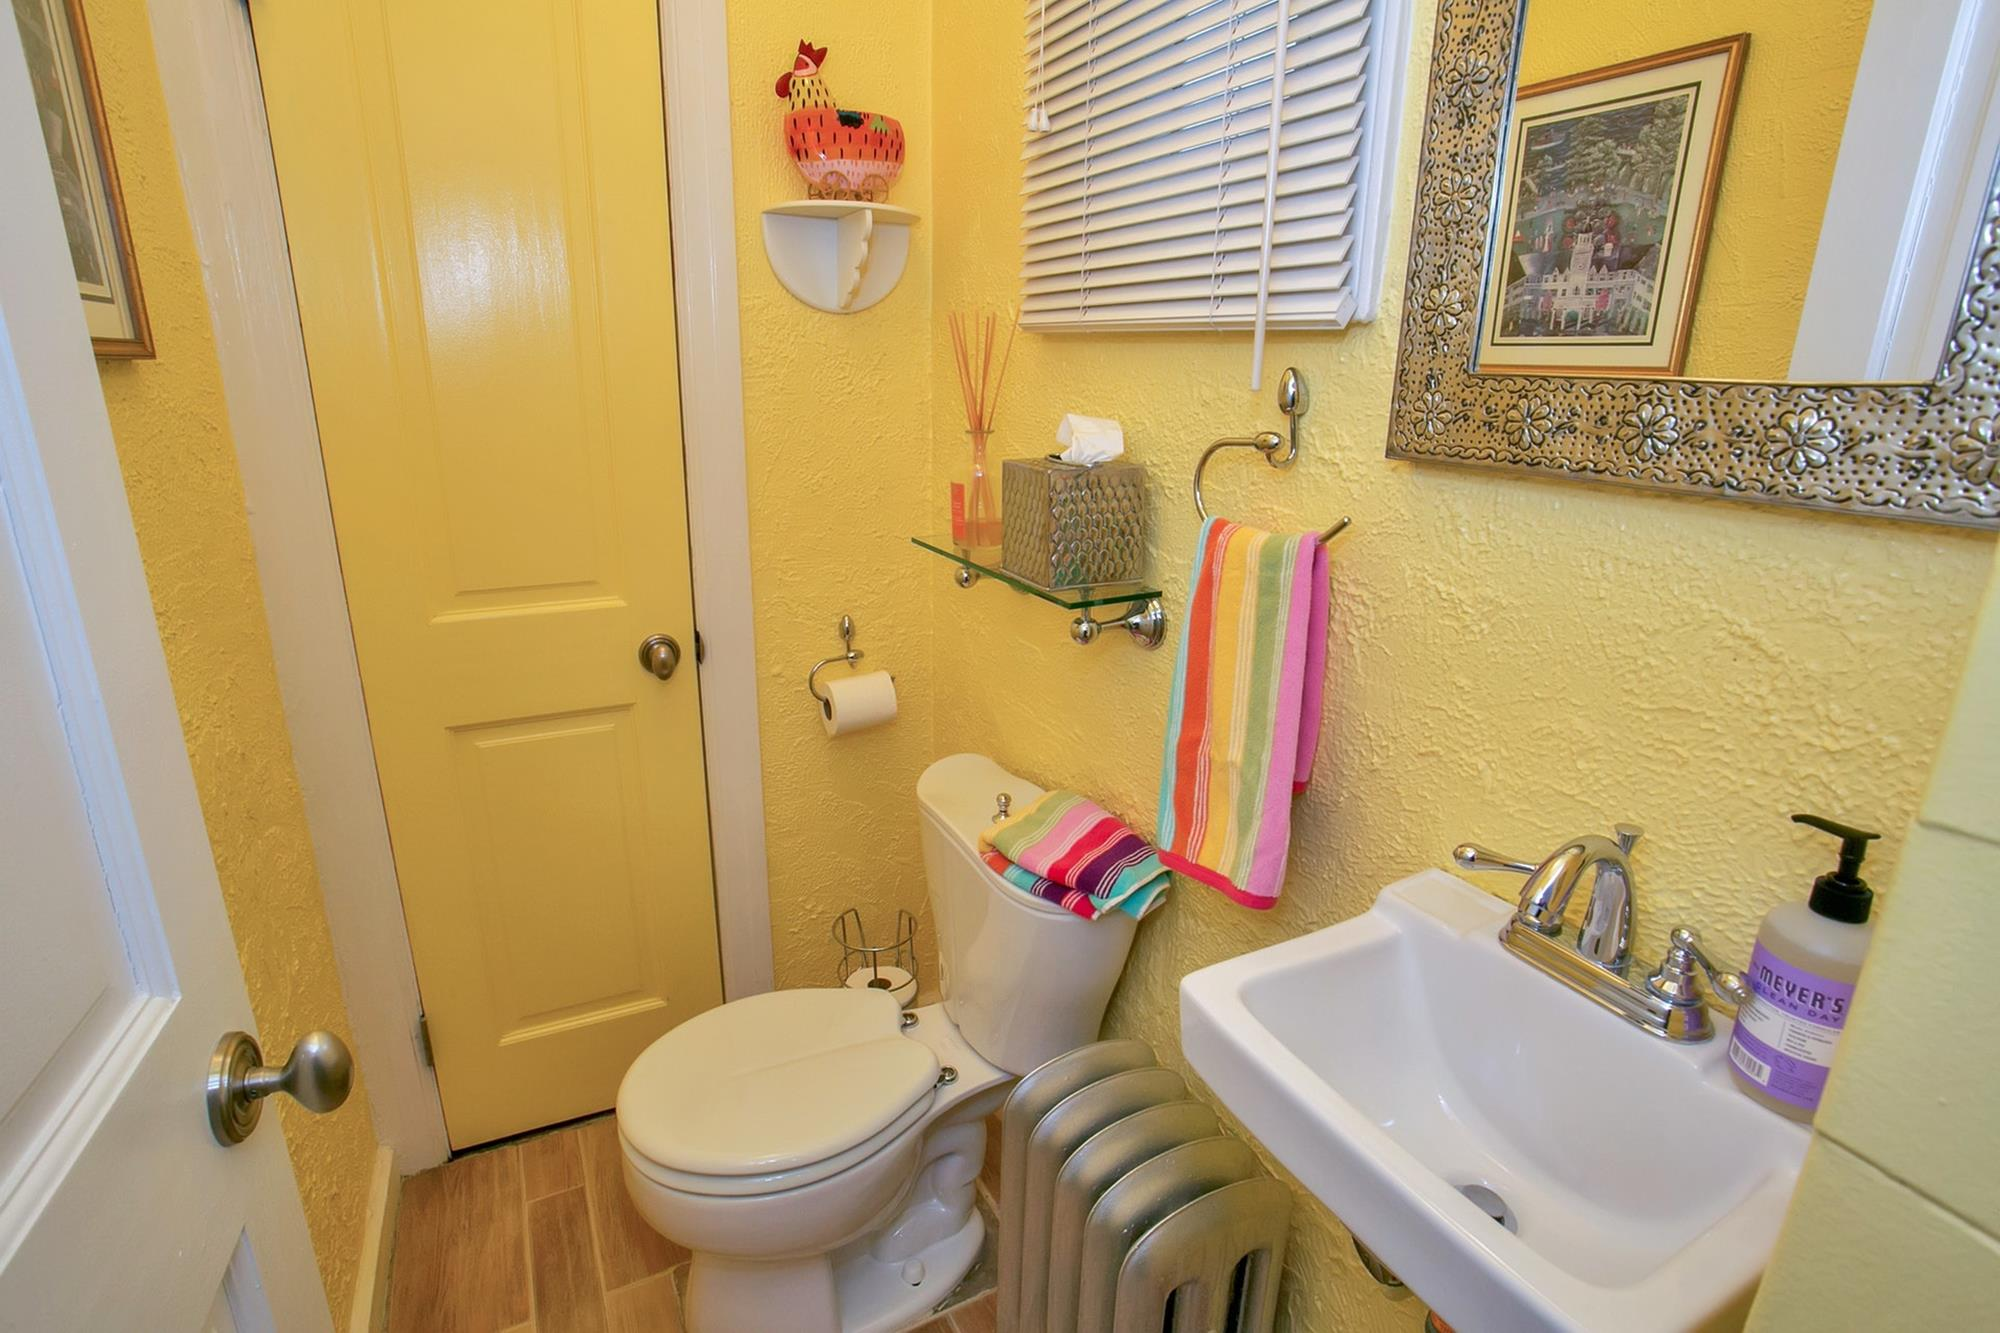 NORTH RIVERDALE: Charming & Renovated 3-Bd. House w/ Front Porch & Level, Grassy Backyard at 6050 Fieldston Rd.